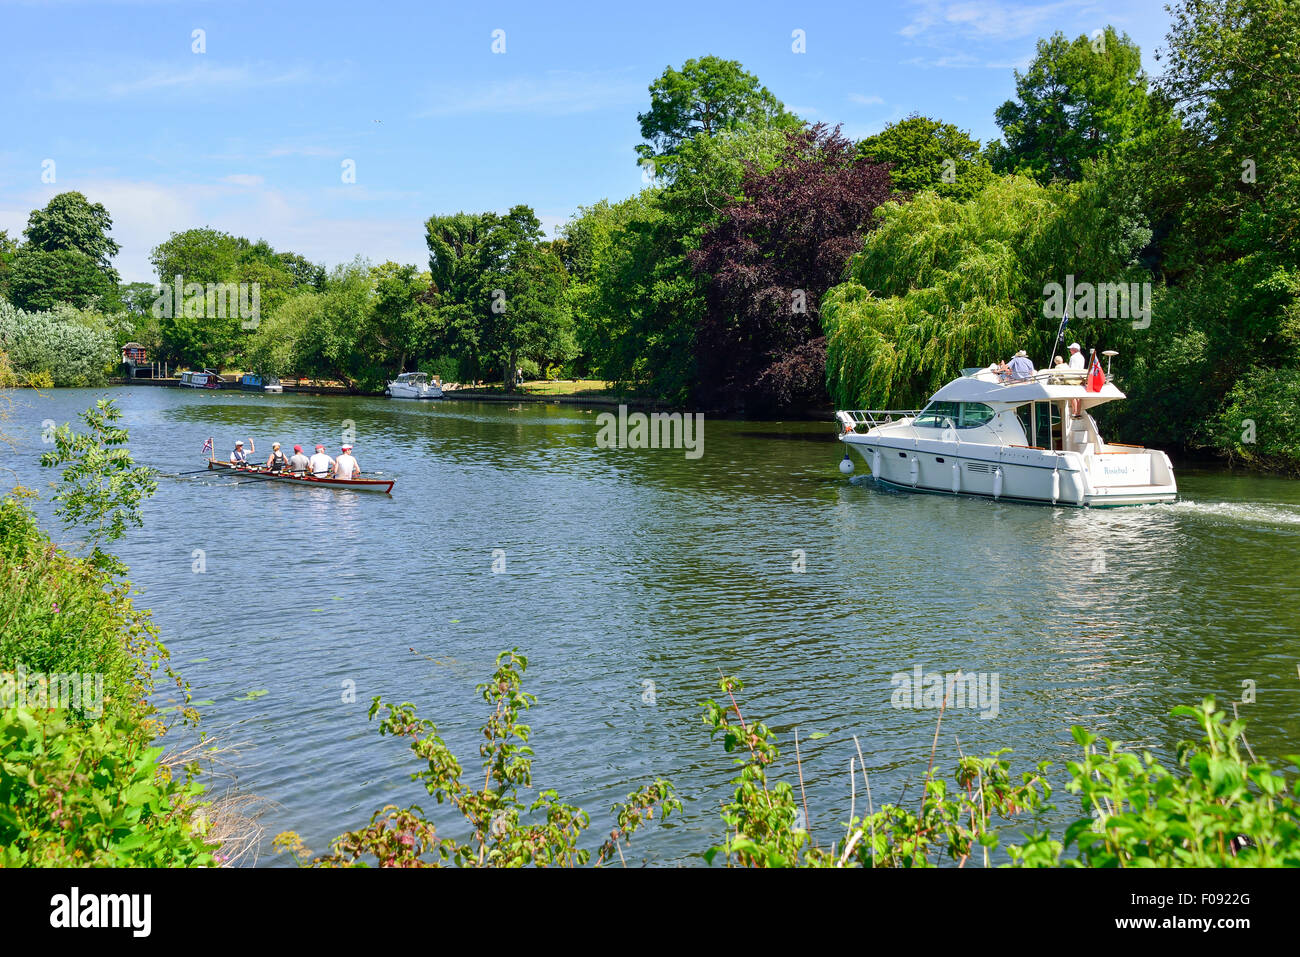 Jeanneau Prestige 32 Boat cruise boat and rowing boat on River Thames, Runnymede, Surrey, England, United Kingdom - Stock Image